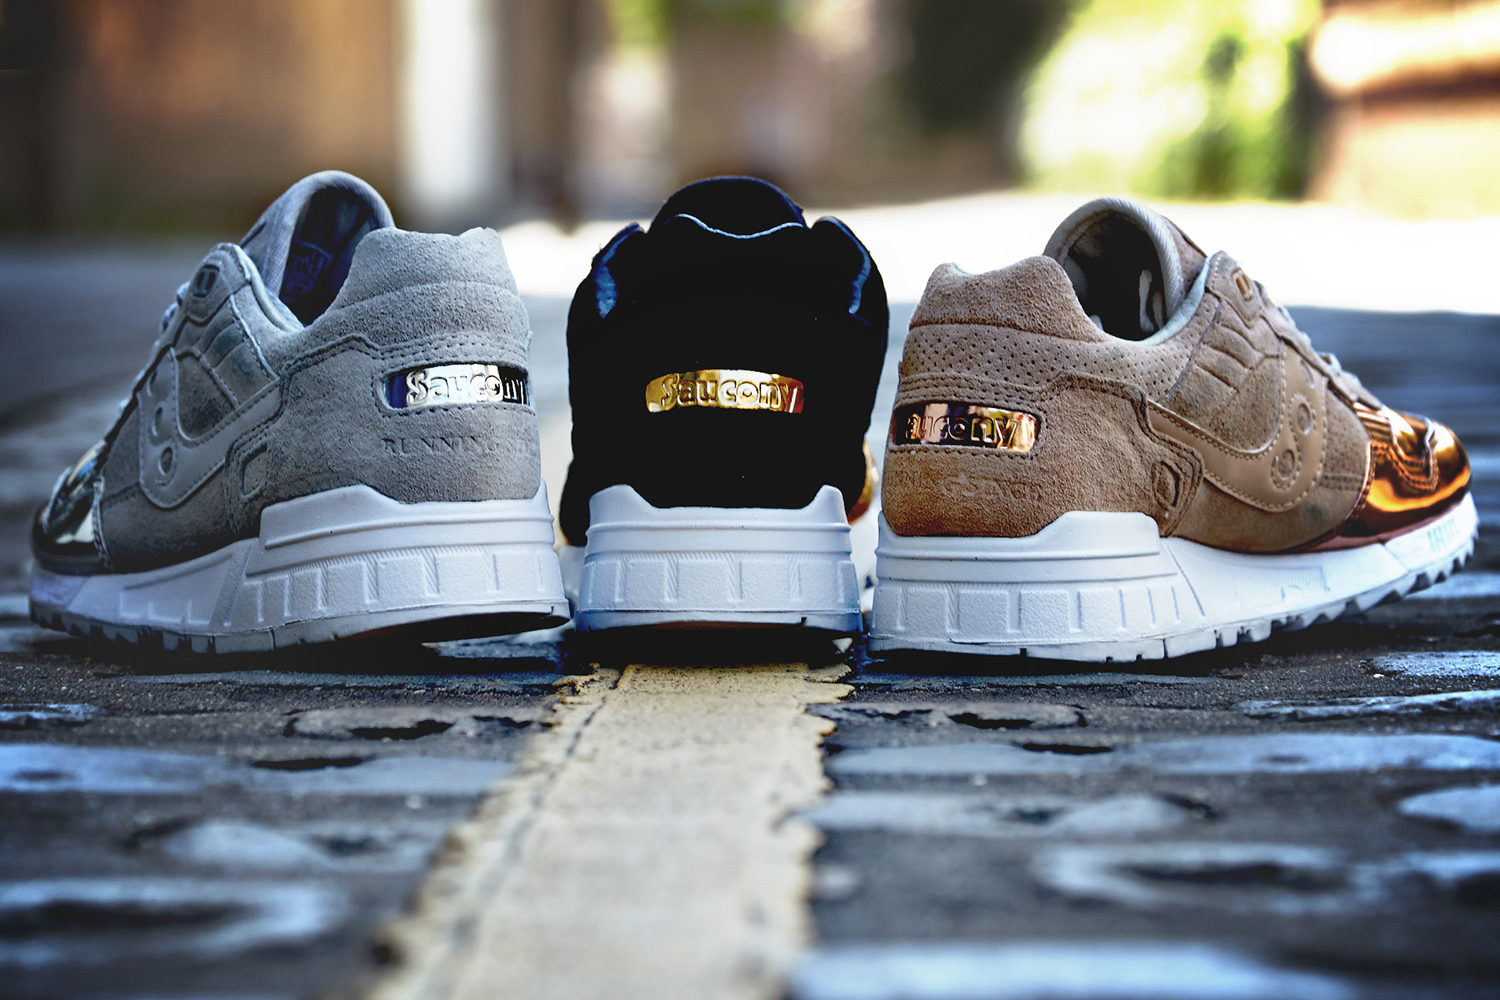 saucony-shadow-5000-offspring-medal-pack-02